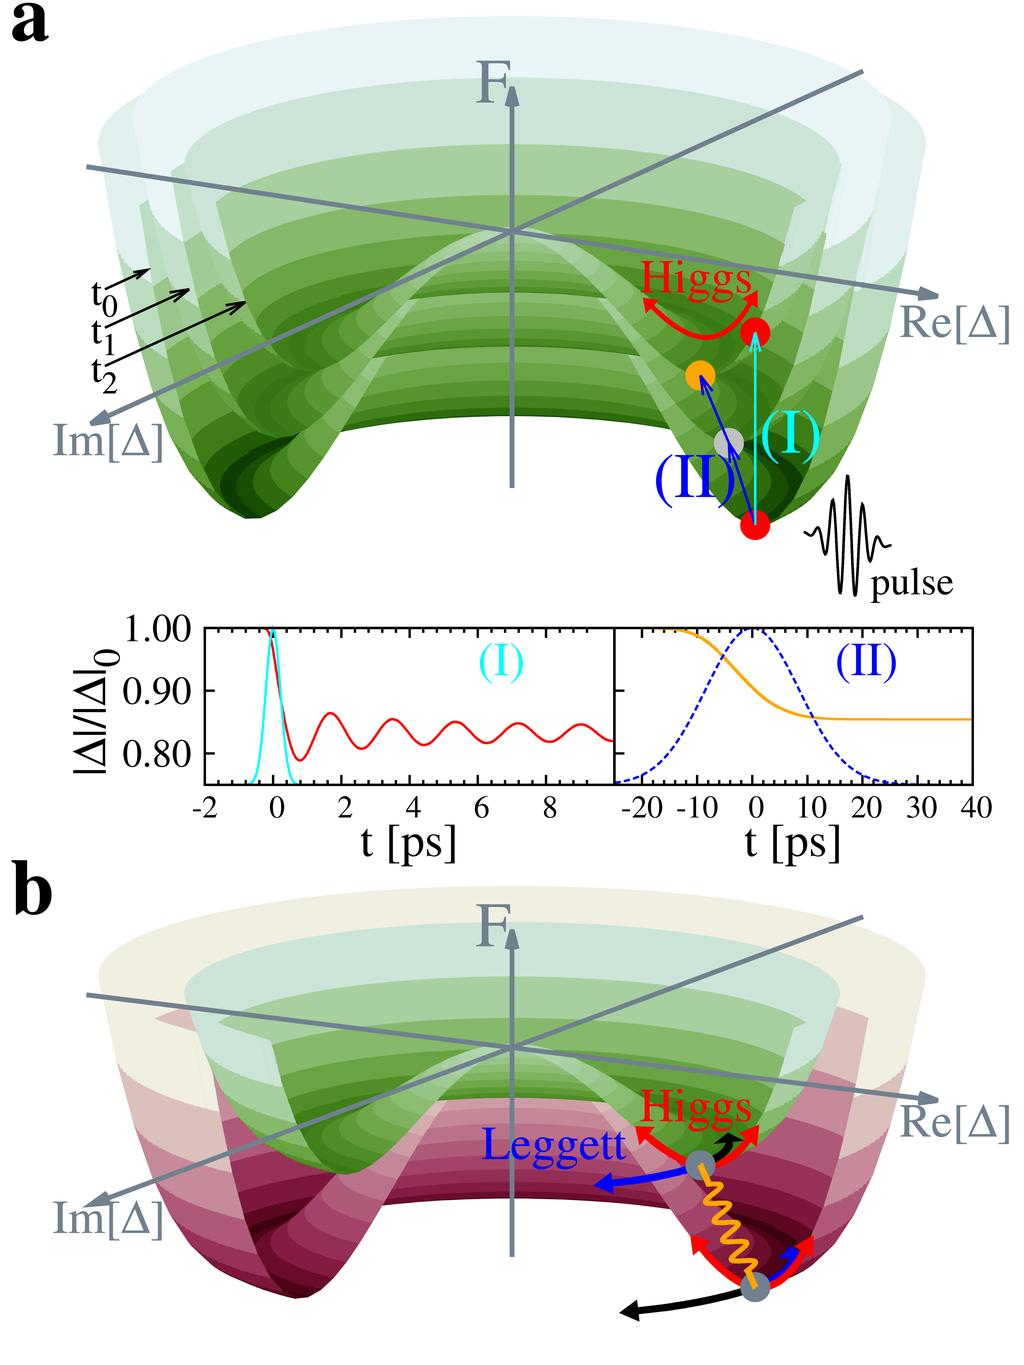 Coupling of Higgs and Leggett modes in nonequilibrium superconductors H. Krull,1, N. Bittner,, G. S. Uhrig,1, D. Manske,, and A. P. Schnyder, 1 arxiv:151.811v1 [cond-mat.